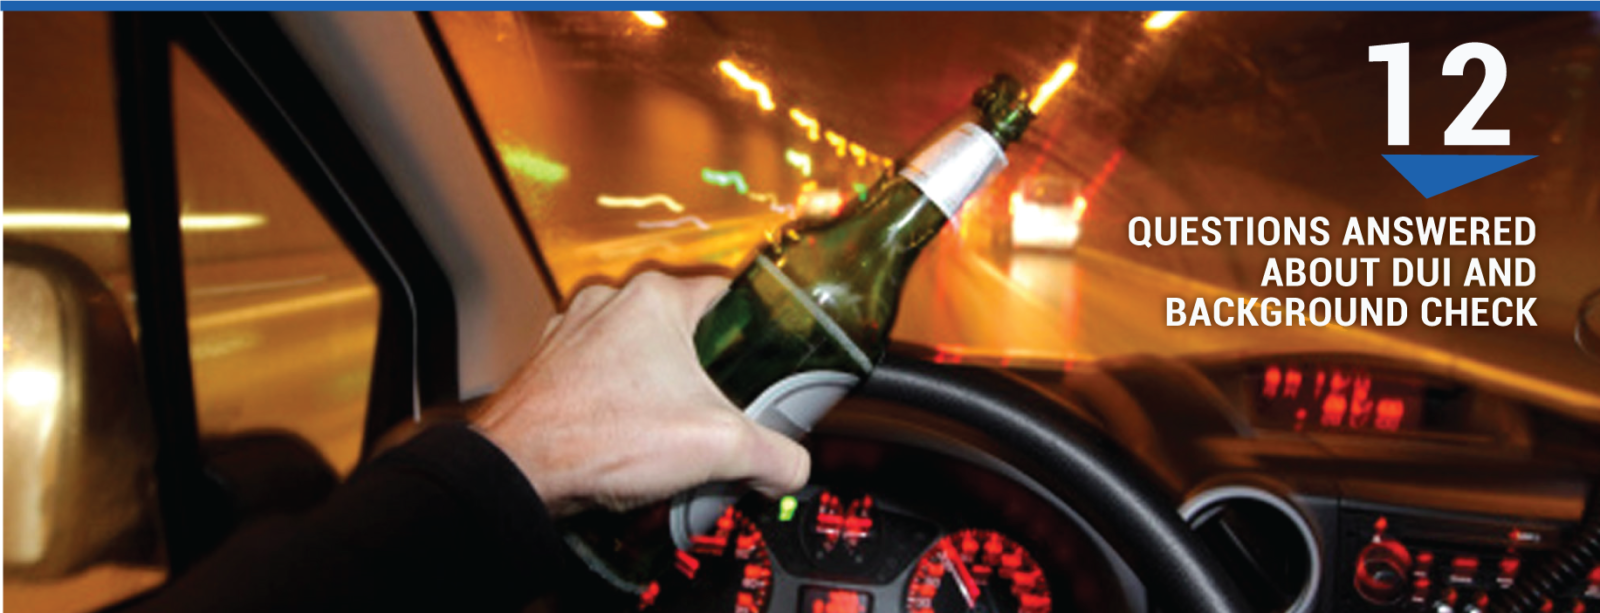 Questions Answered About DUI and Background Check